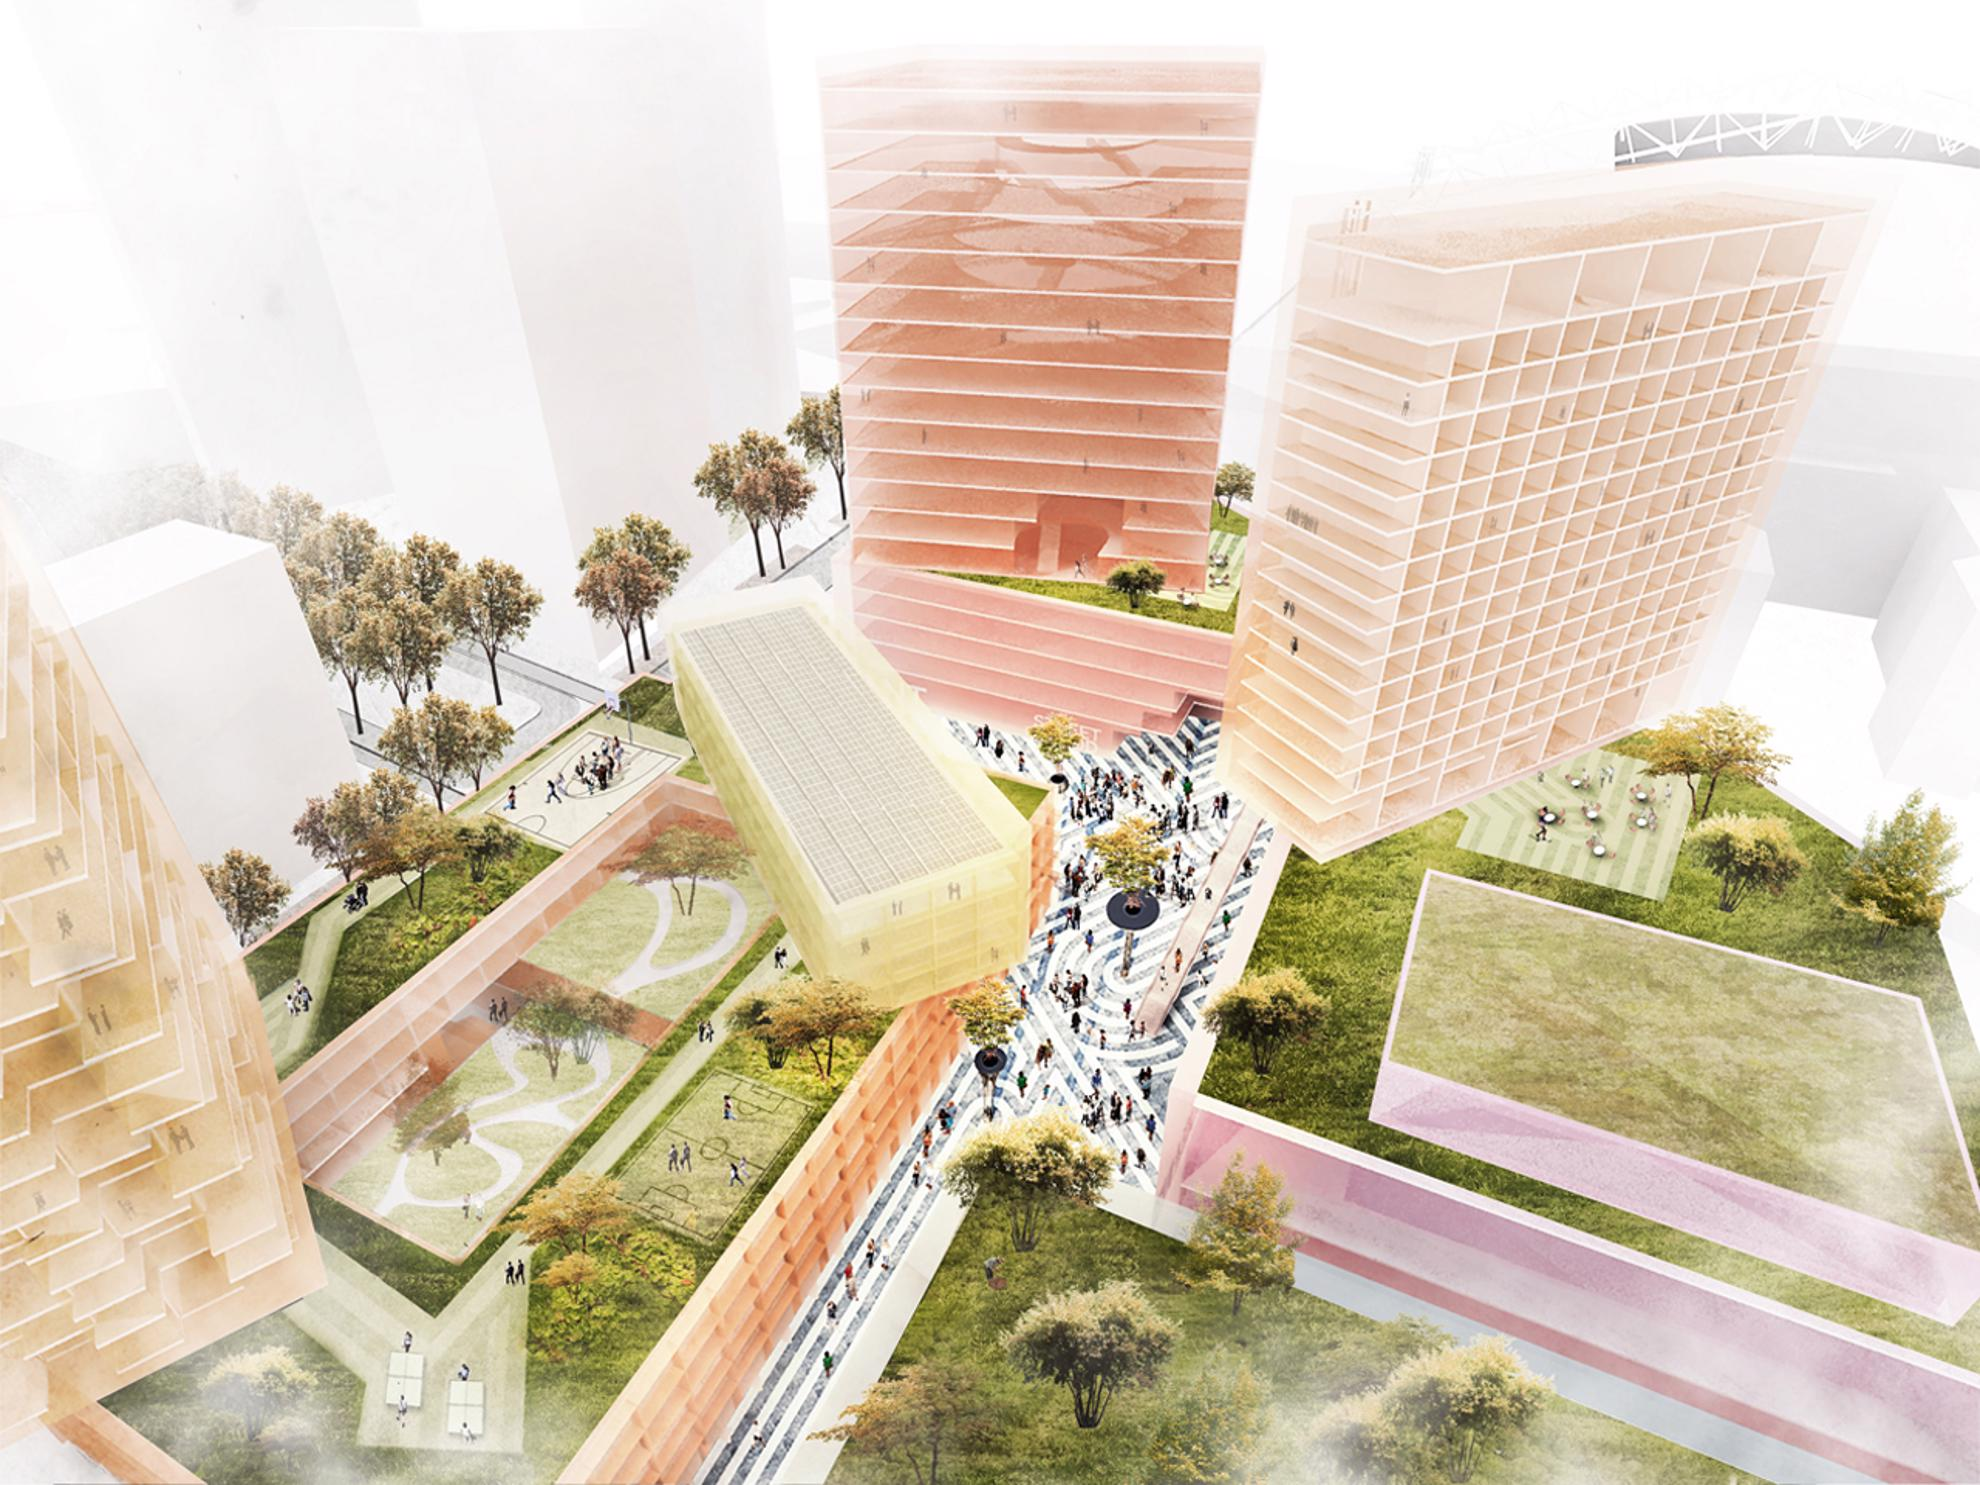 Urban Districts Embrace Social >> Mvrdv Urban Interactive District